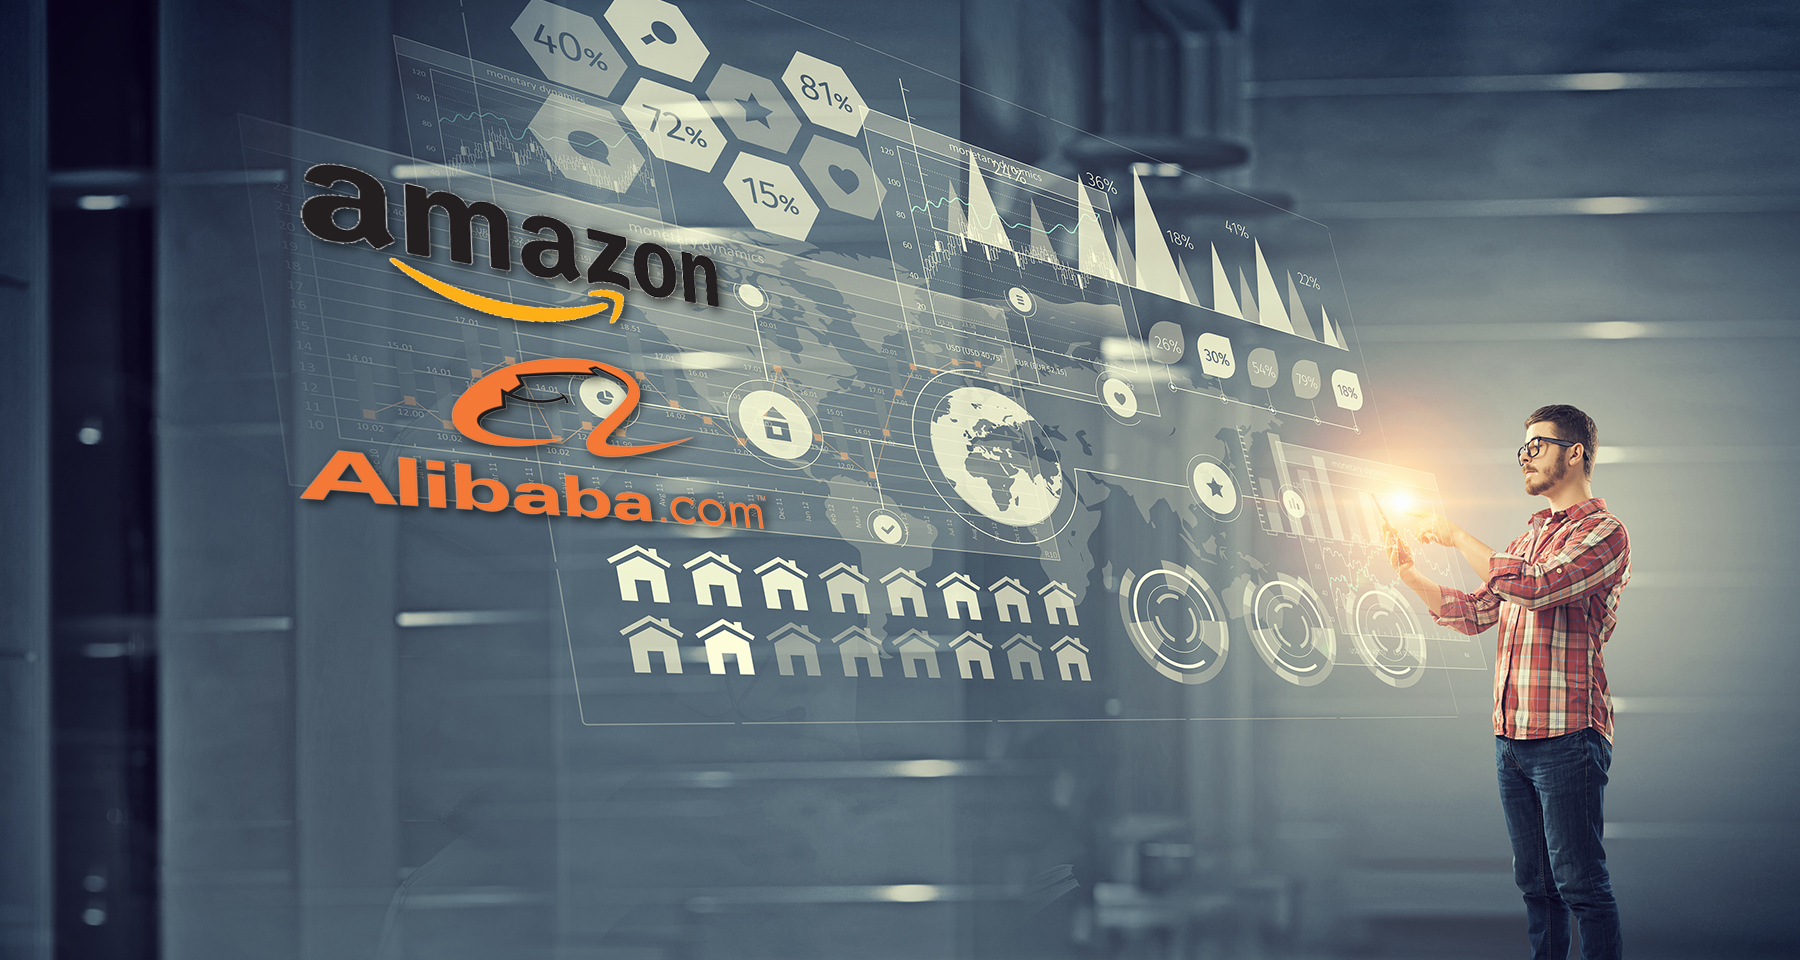 Will Amazon, Alibaba eat the bigger slice of the advertising pie?